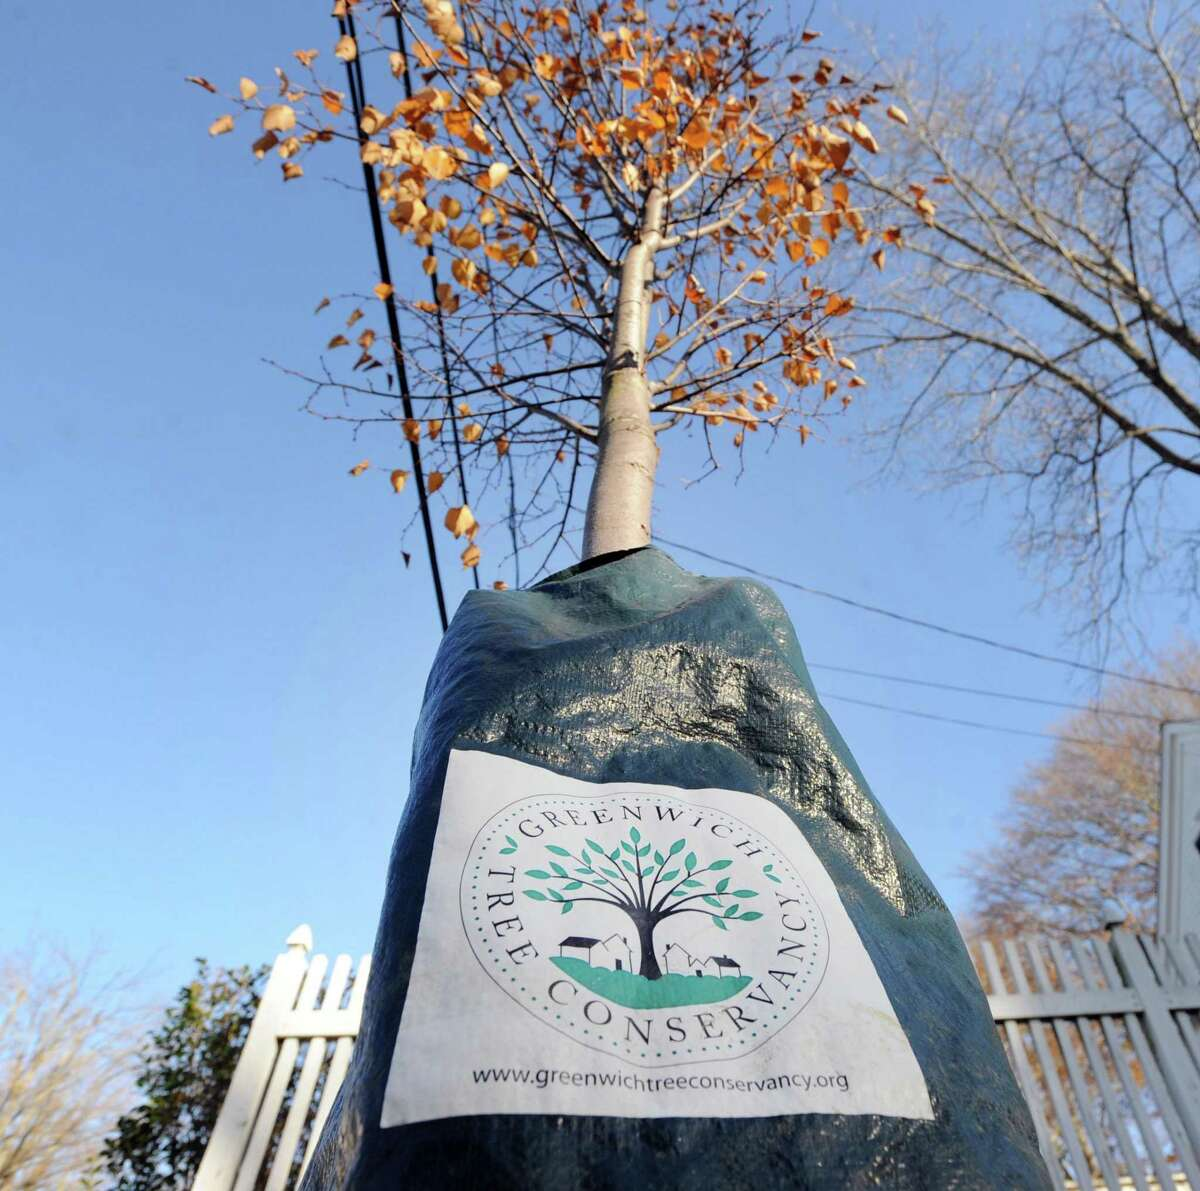 A Greenwich Tree Conservancy planting marked by a green bag to retain moisture on Halsey Drive in Havemeyer Park, Old Greenwich, Conn., Nov. 23, 2016.